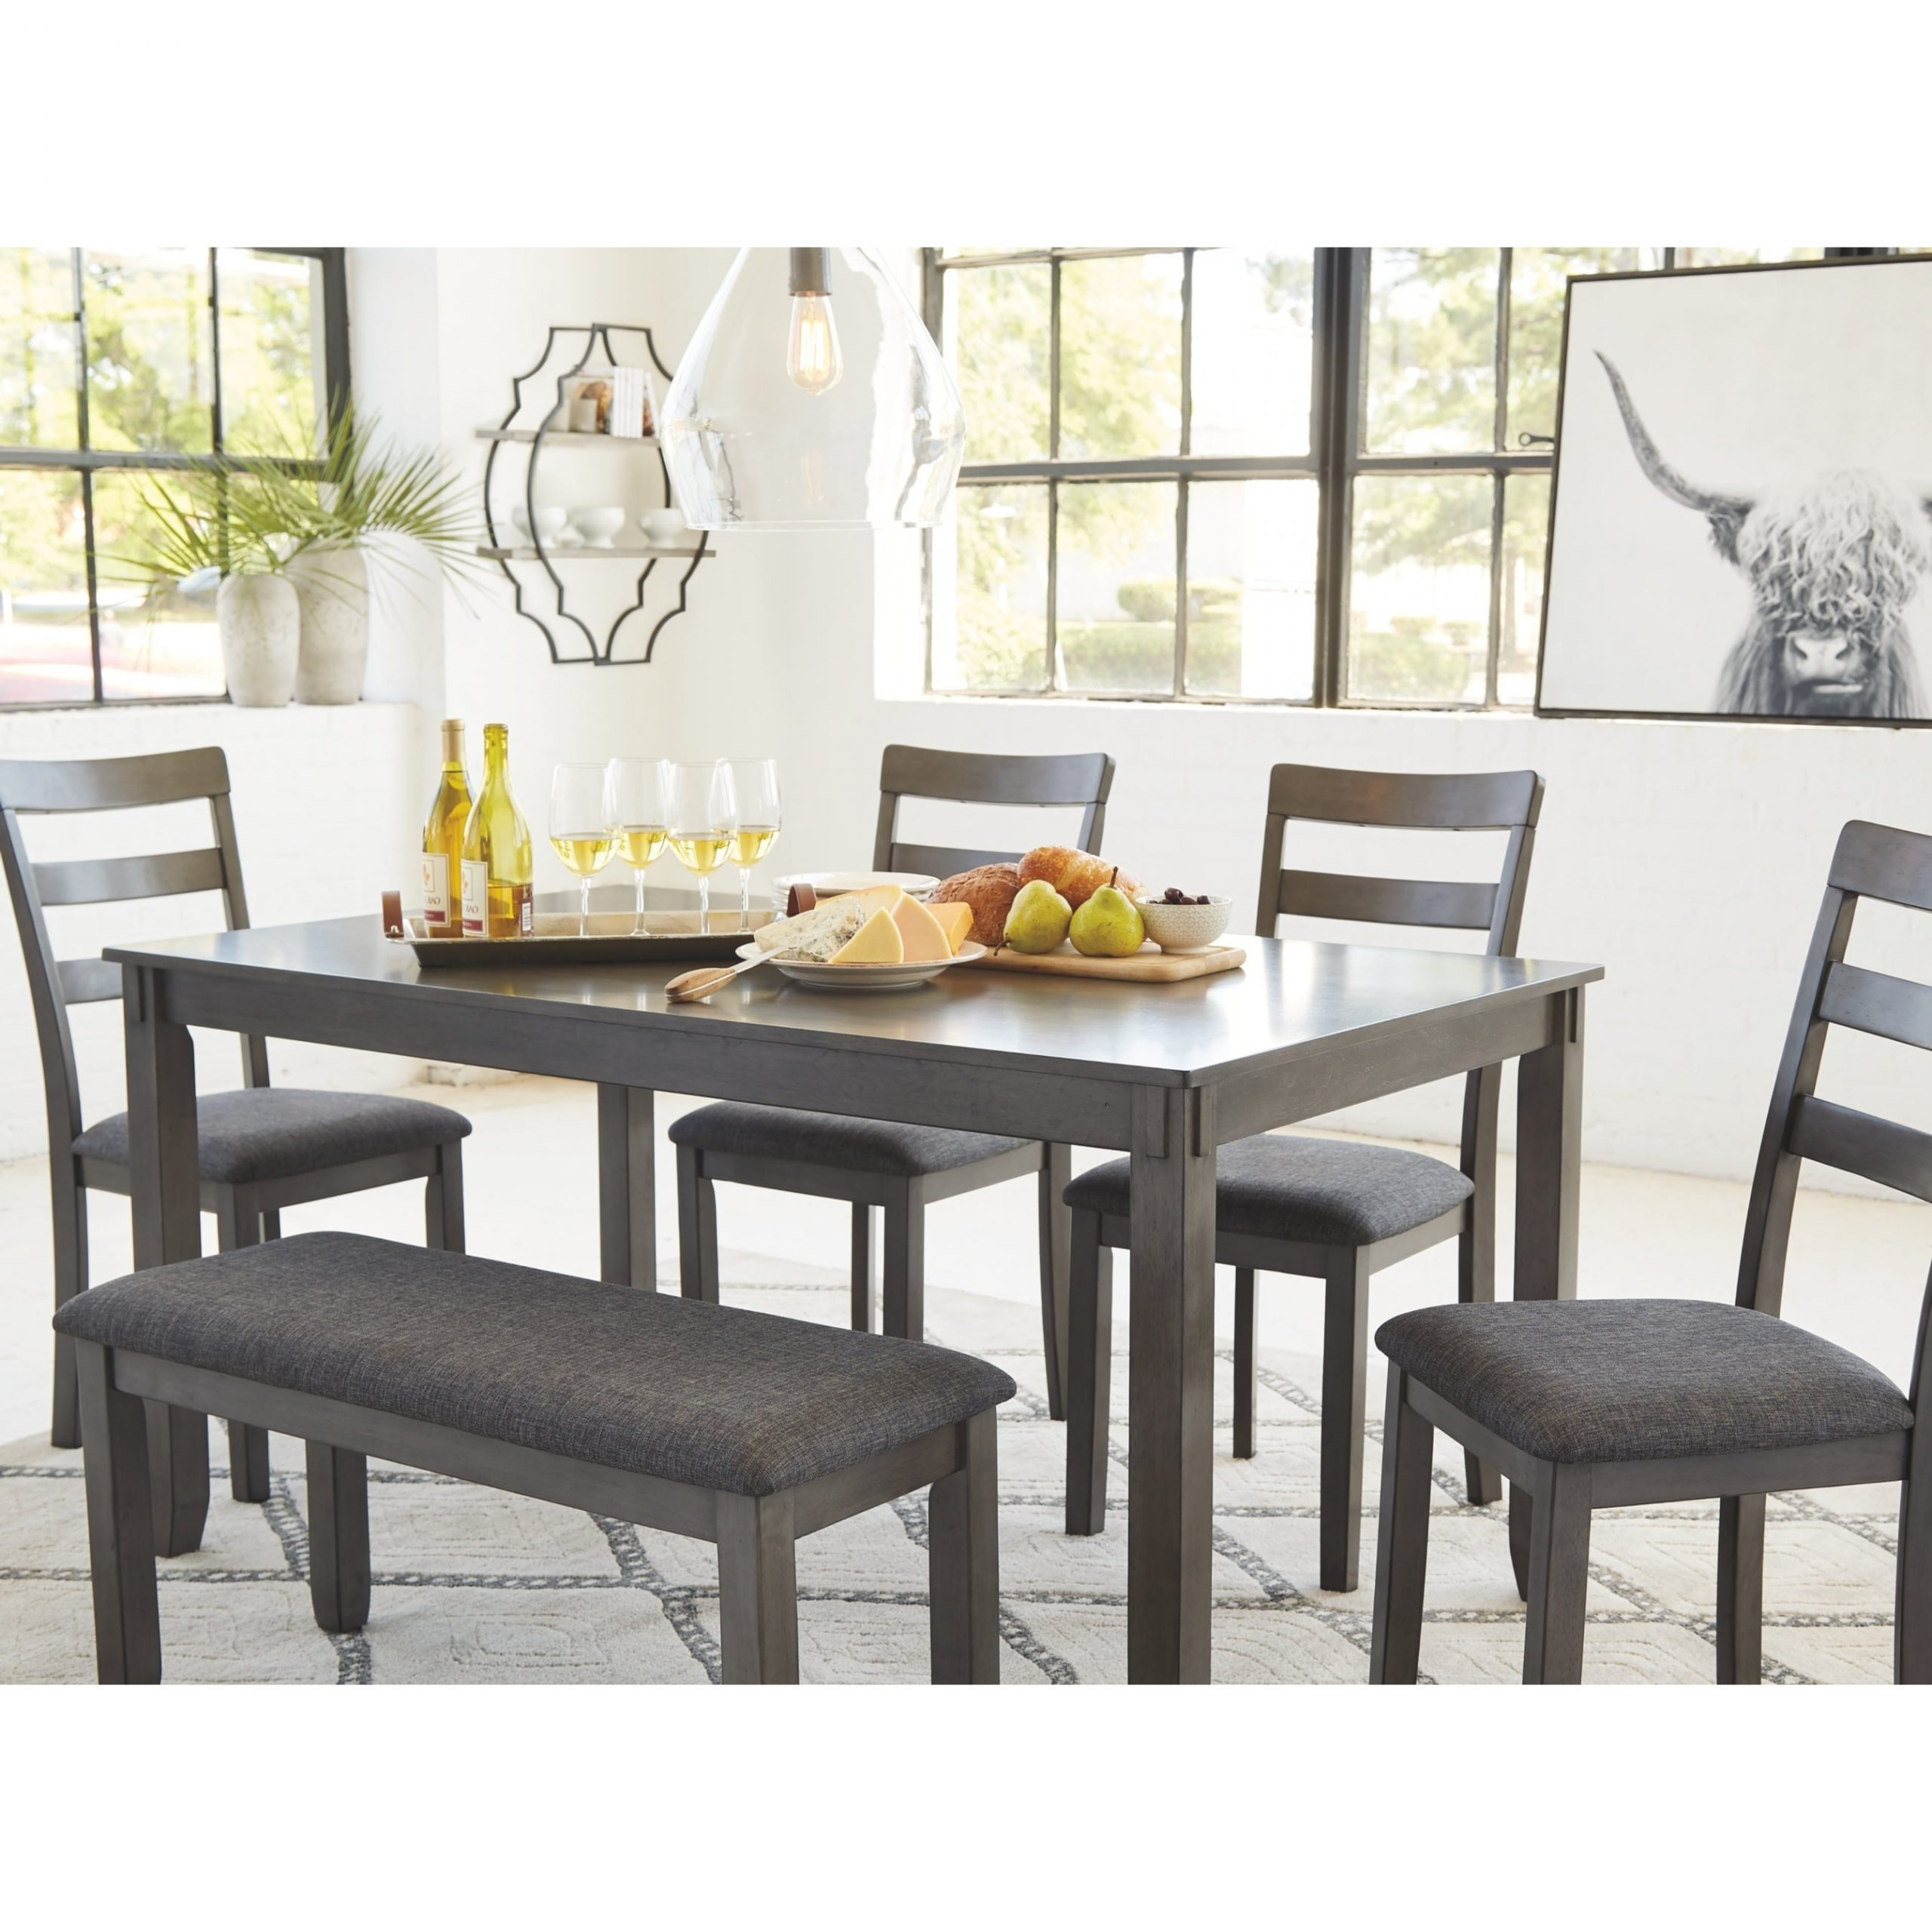 2019 Bridson Rectangular Dining Room Table Set Of 6 – Gray In Charcoal Transitional 6 Seating Rectangular Dining Tables (View 1 of 25)